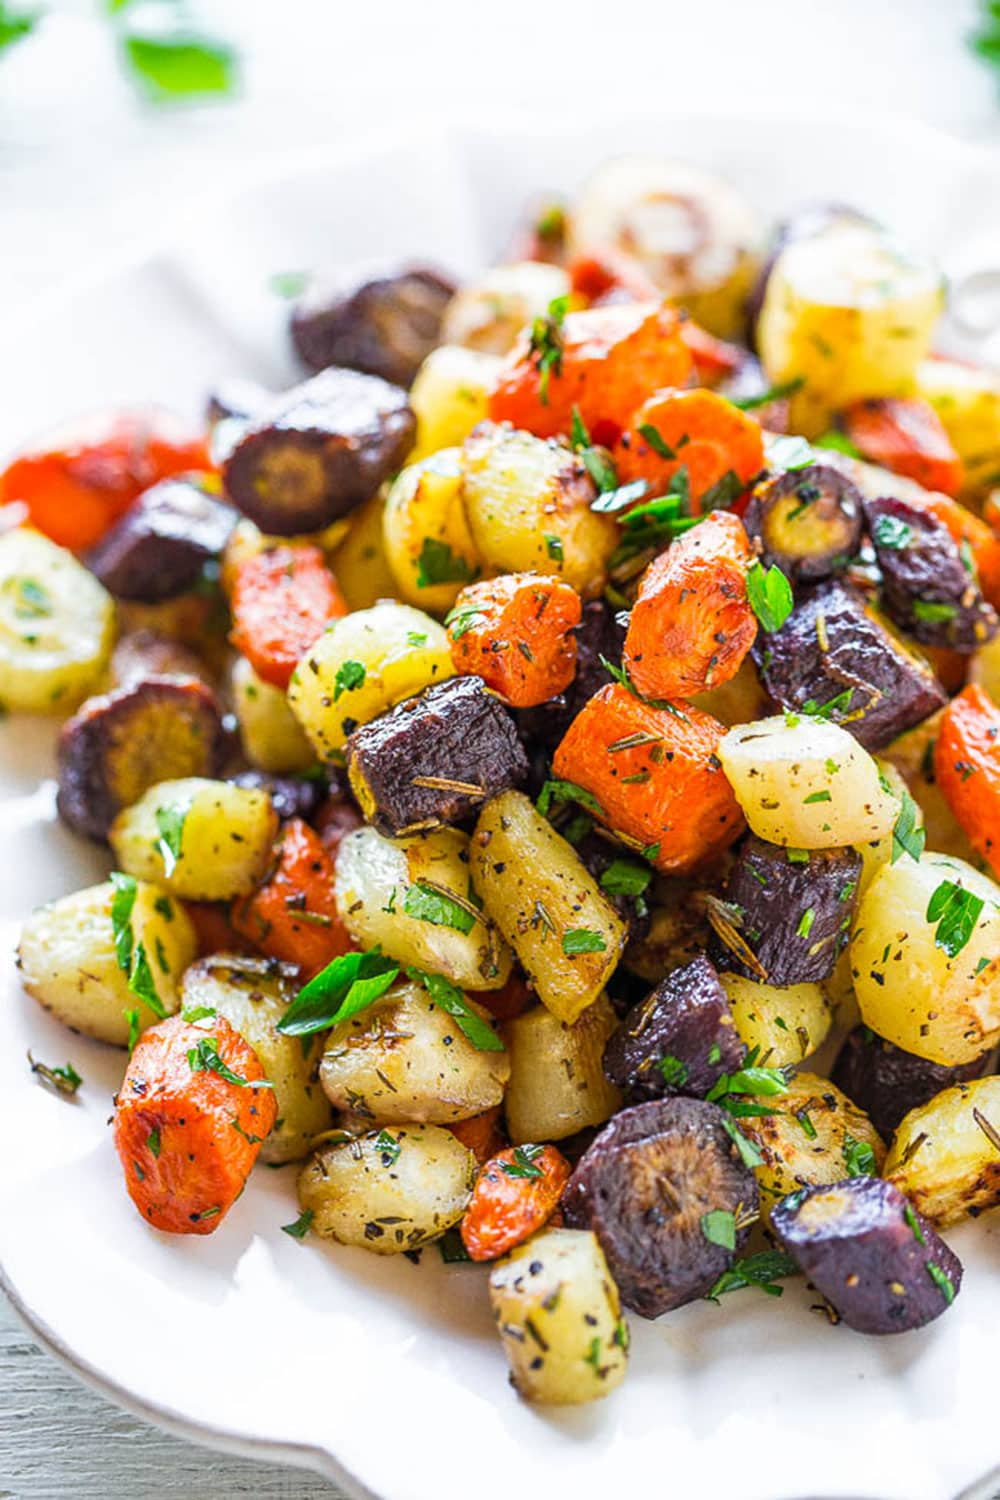 Herb-Roaster Tri-Colored Carrots by Averie Cooke